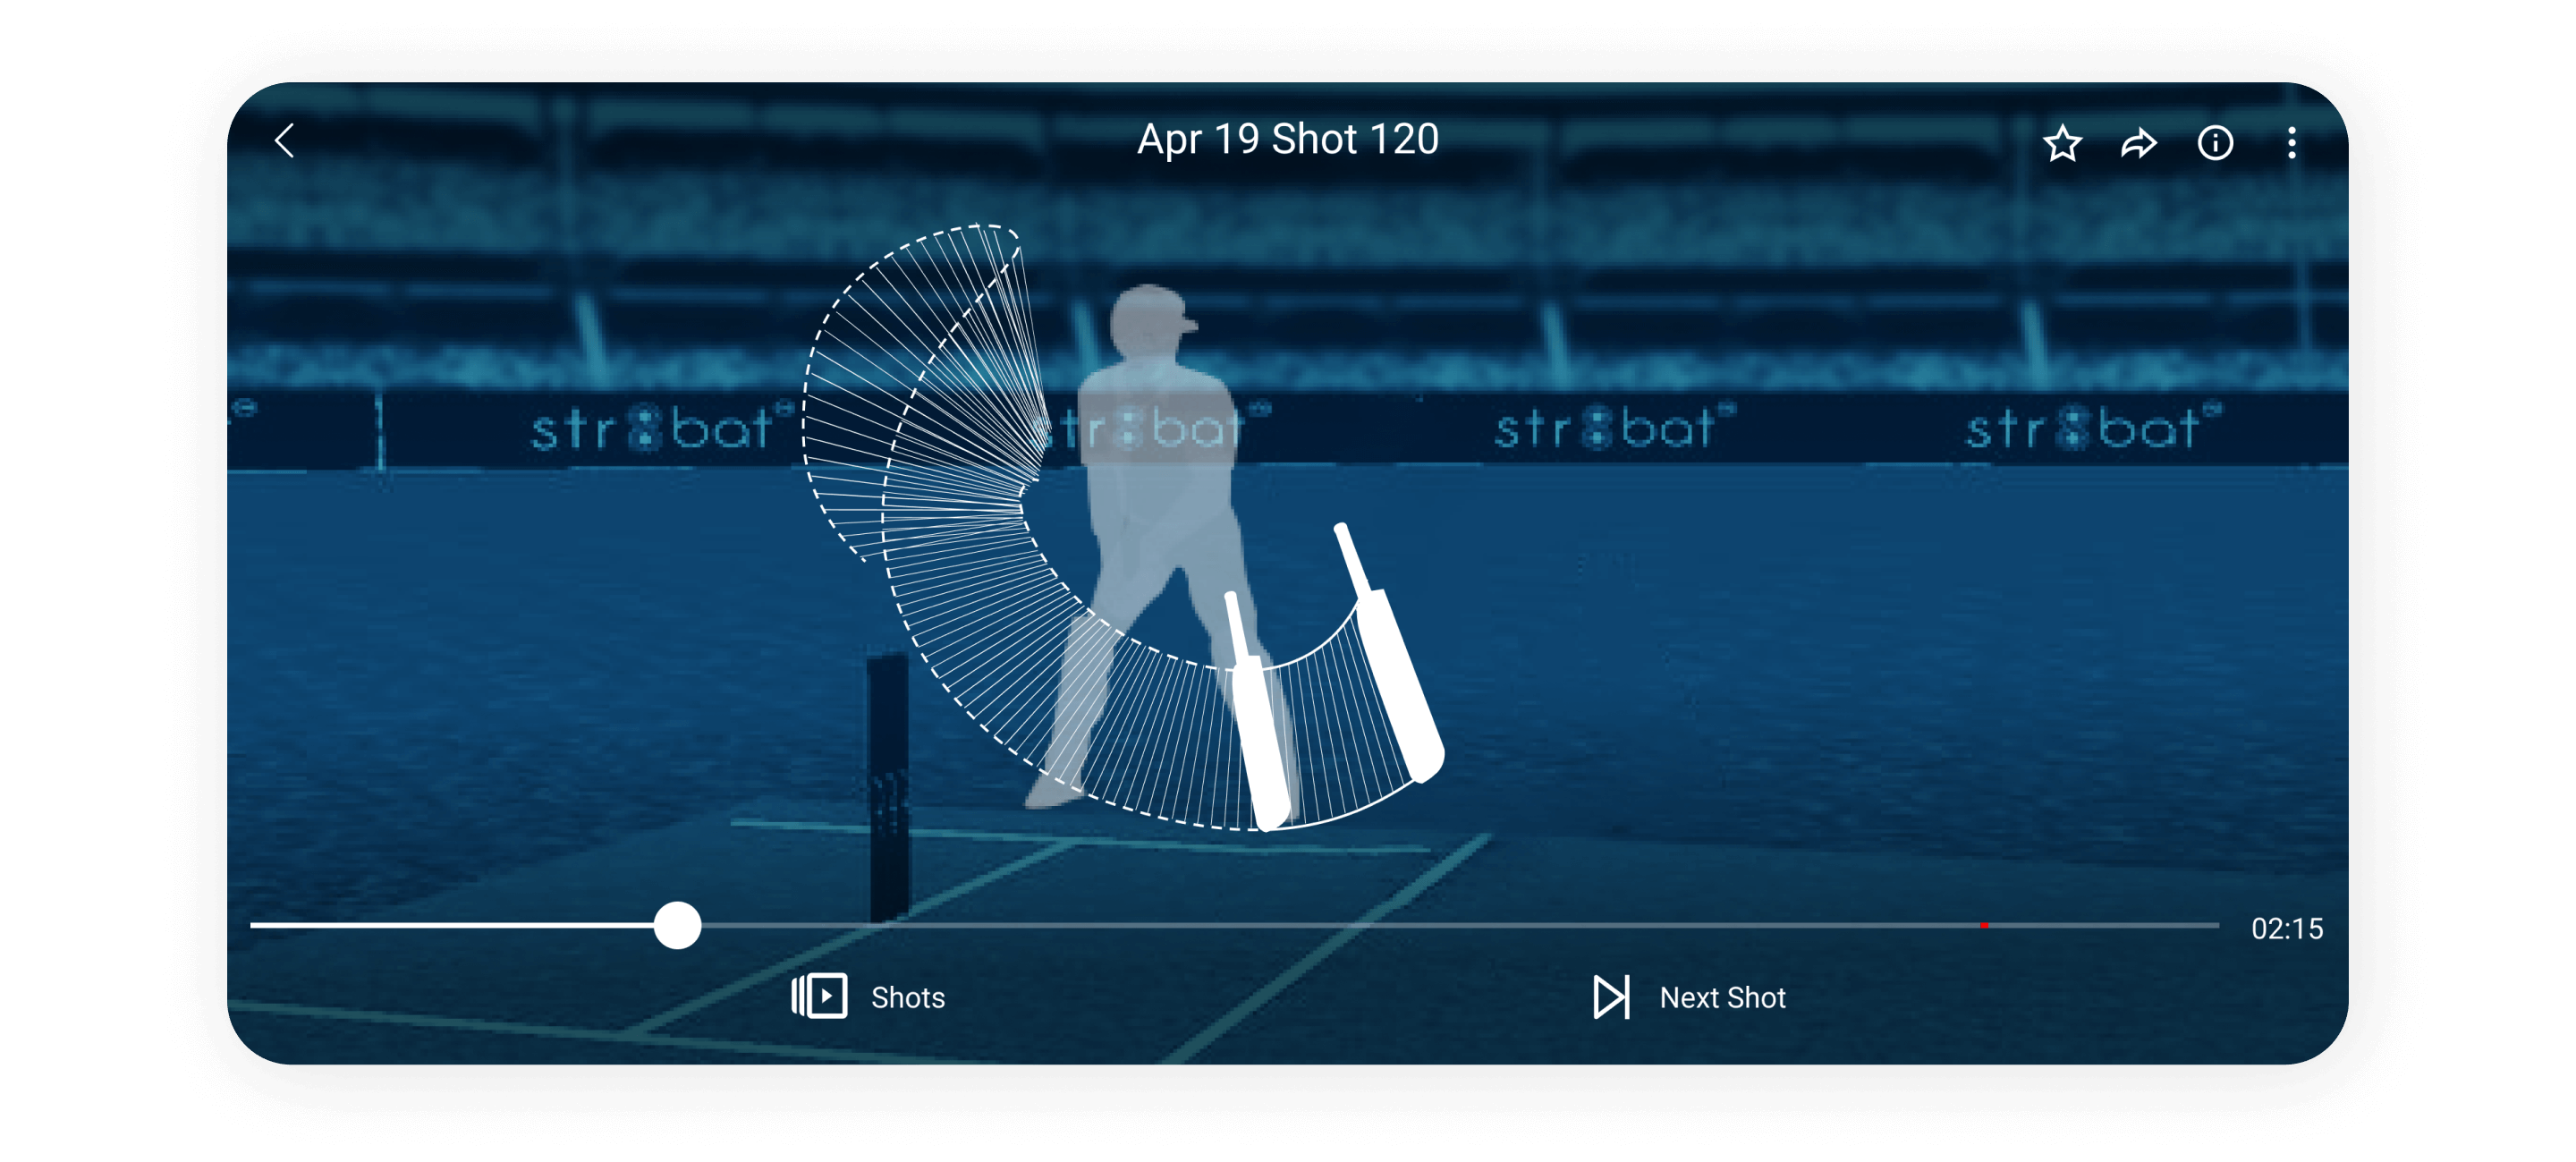 'Cricket as a celebration' is the concept behind the branding and visual design of the mobile app, Str8bat.